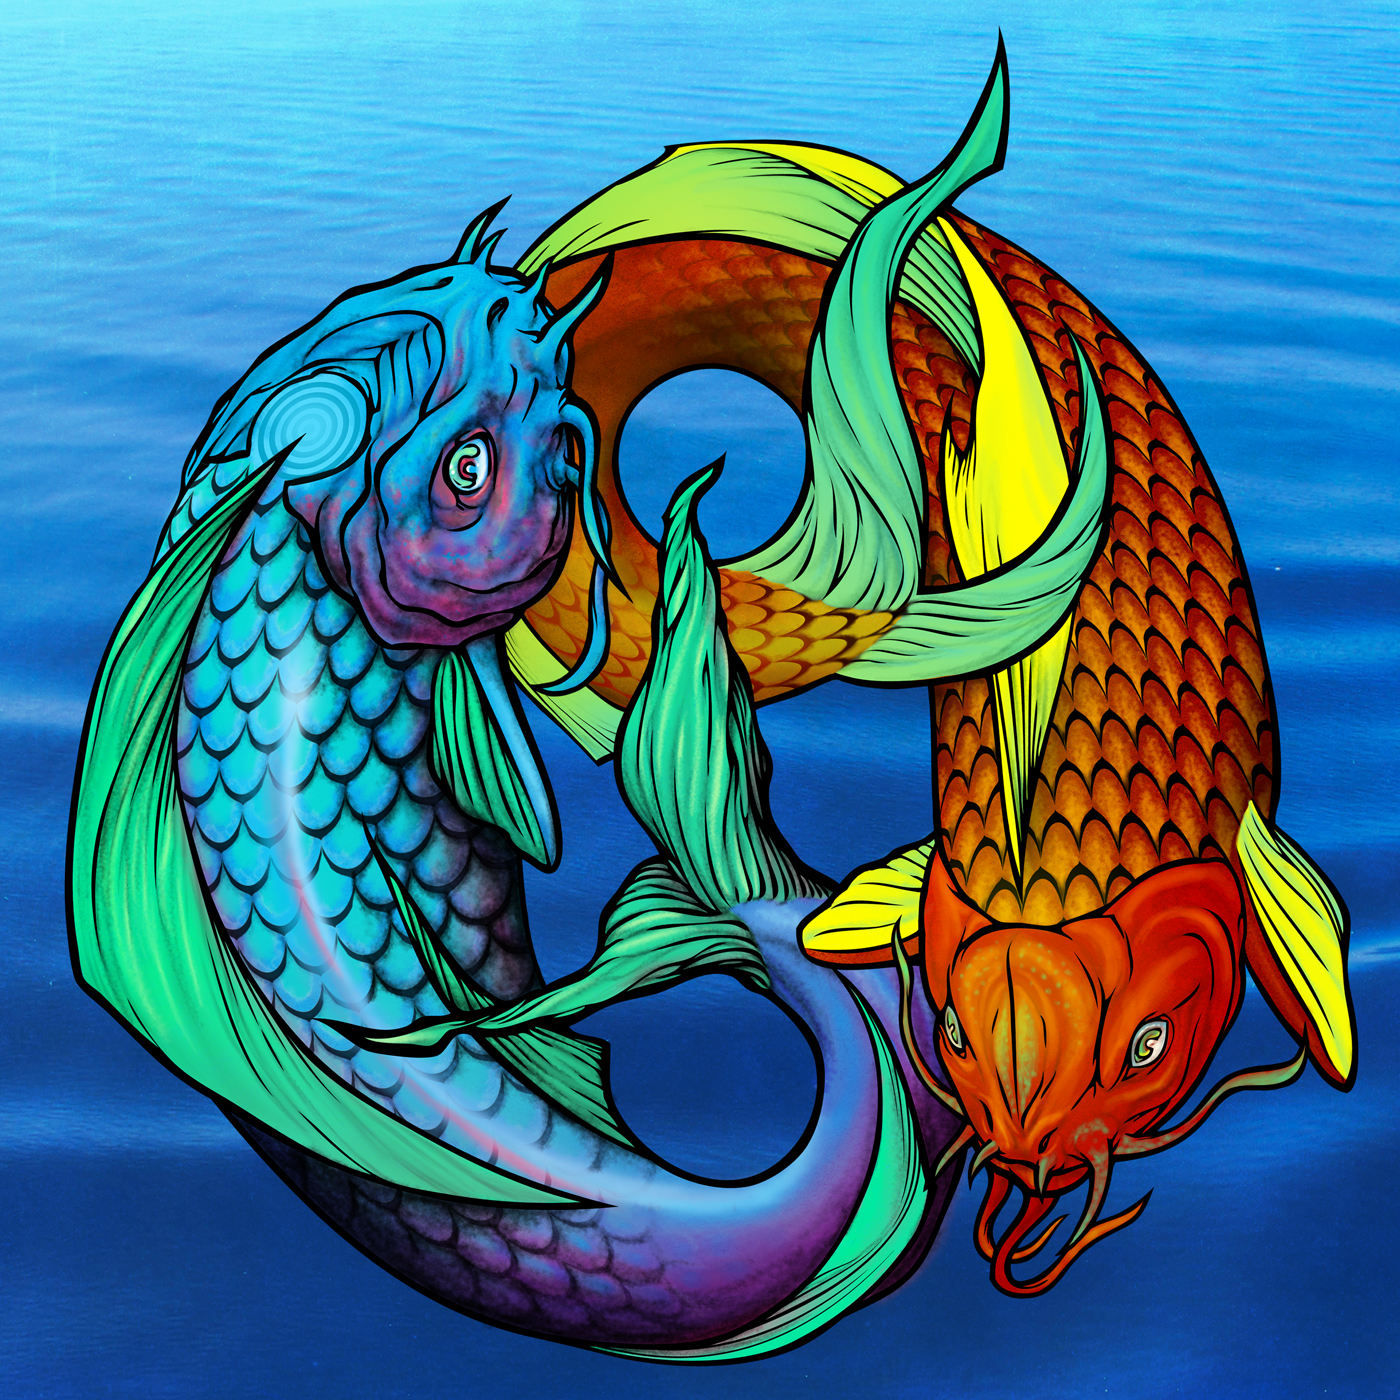 a wolf illustrations blog koi fish pisces ying yang